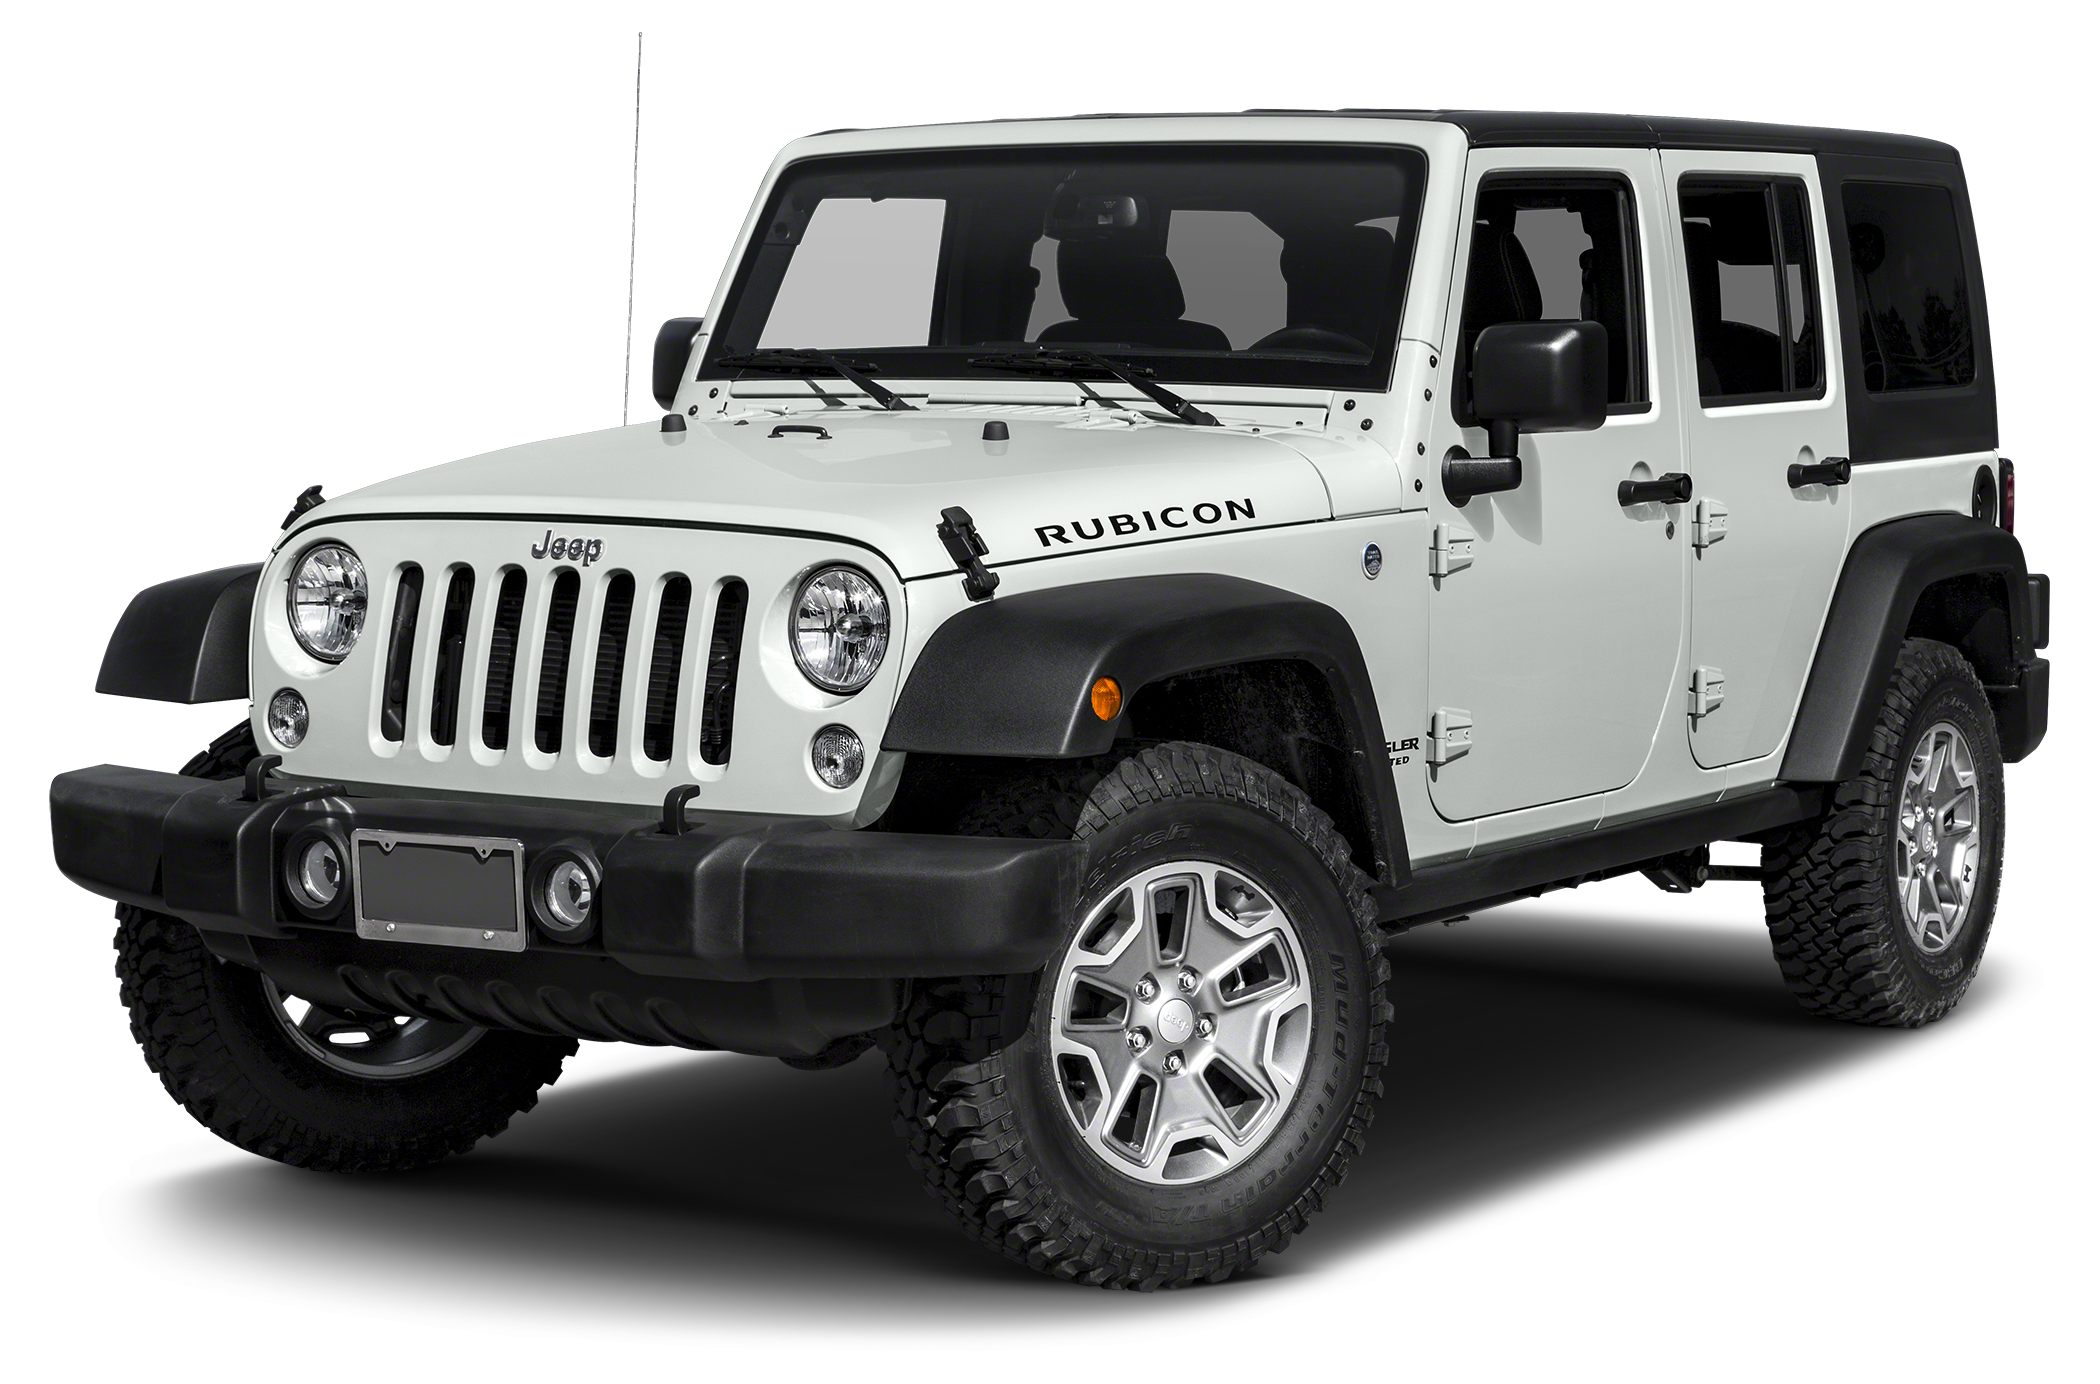 2015 Jeep Wrangler Unlimited Rubicon Color White Stock JW2818A VIN 1C4BJWFG1FL628475